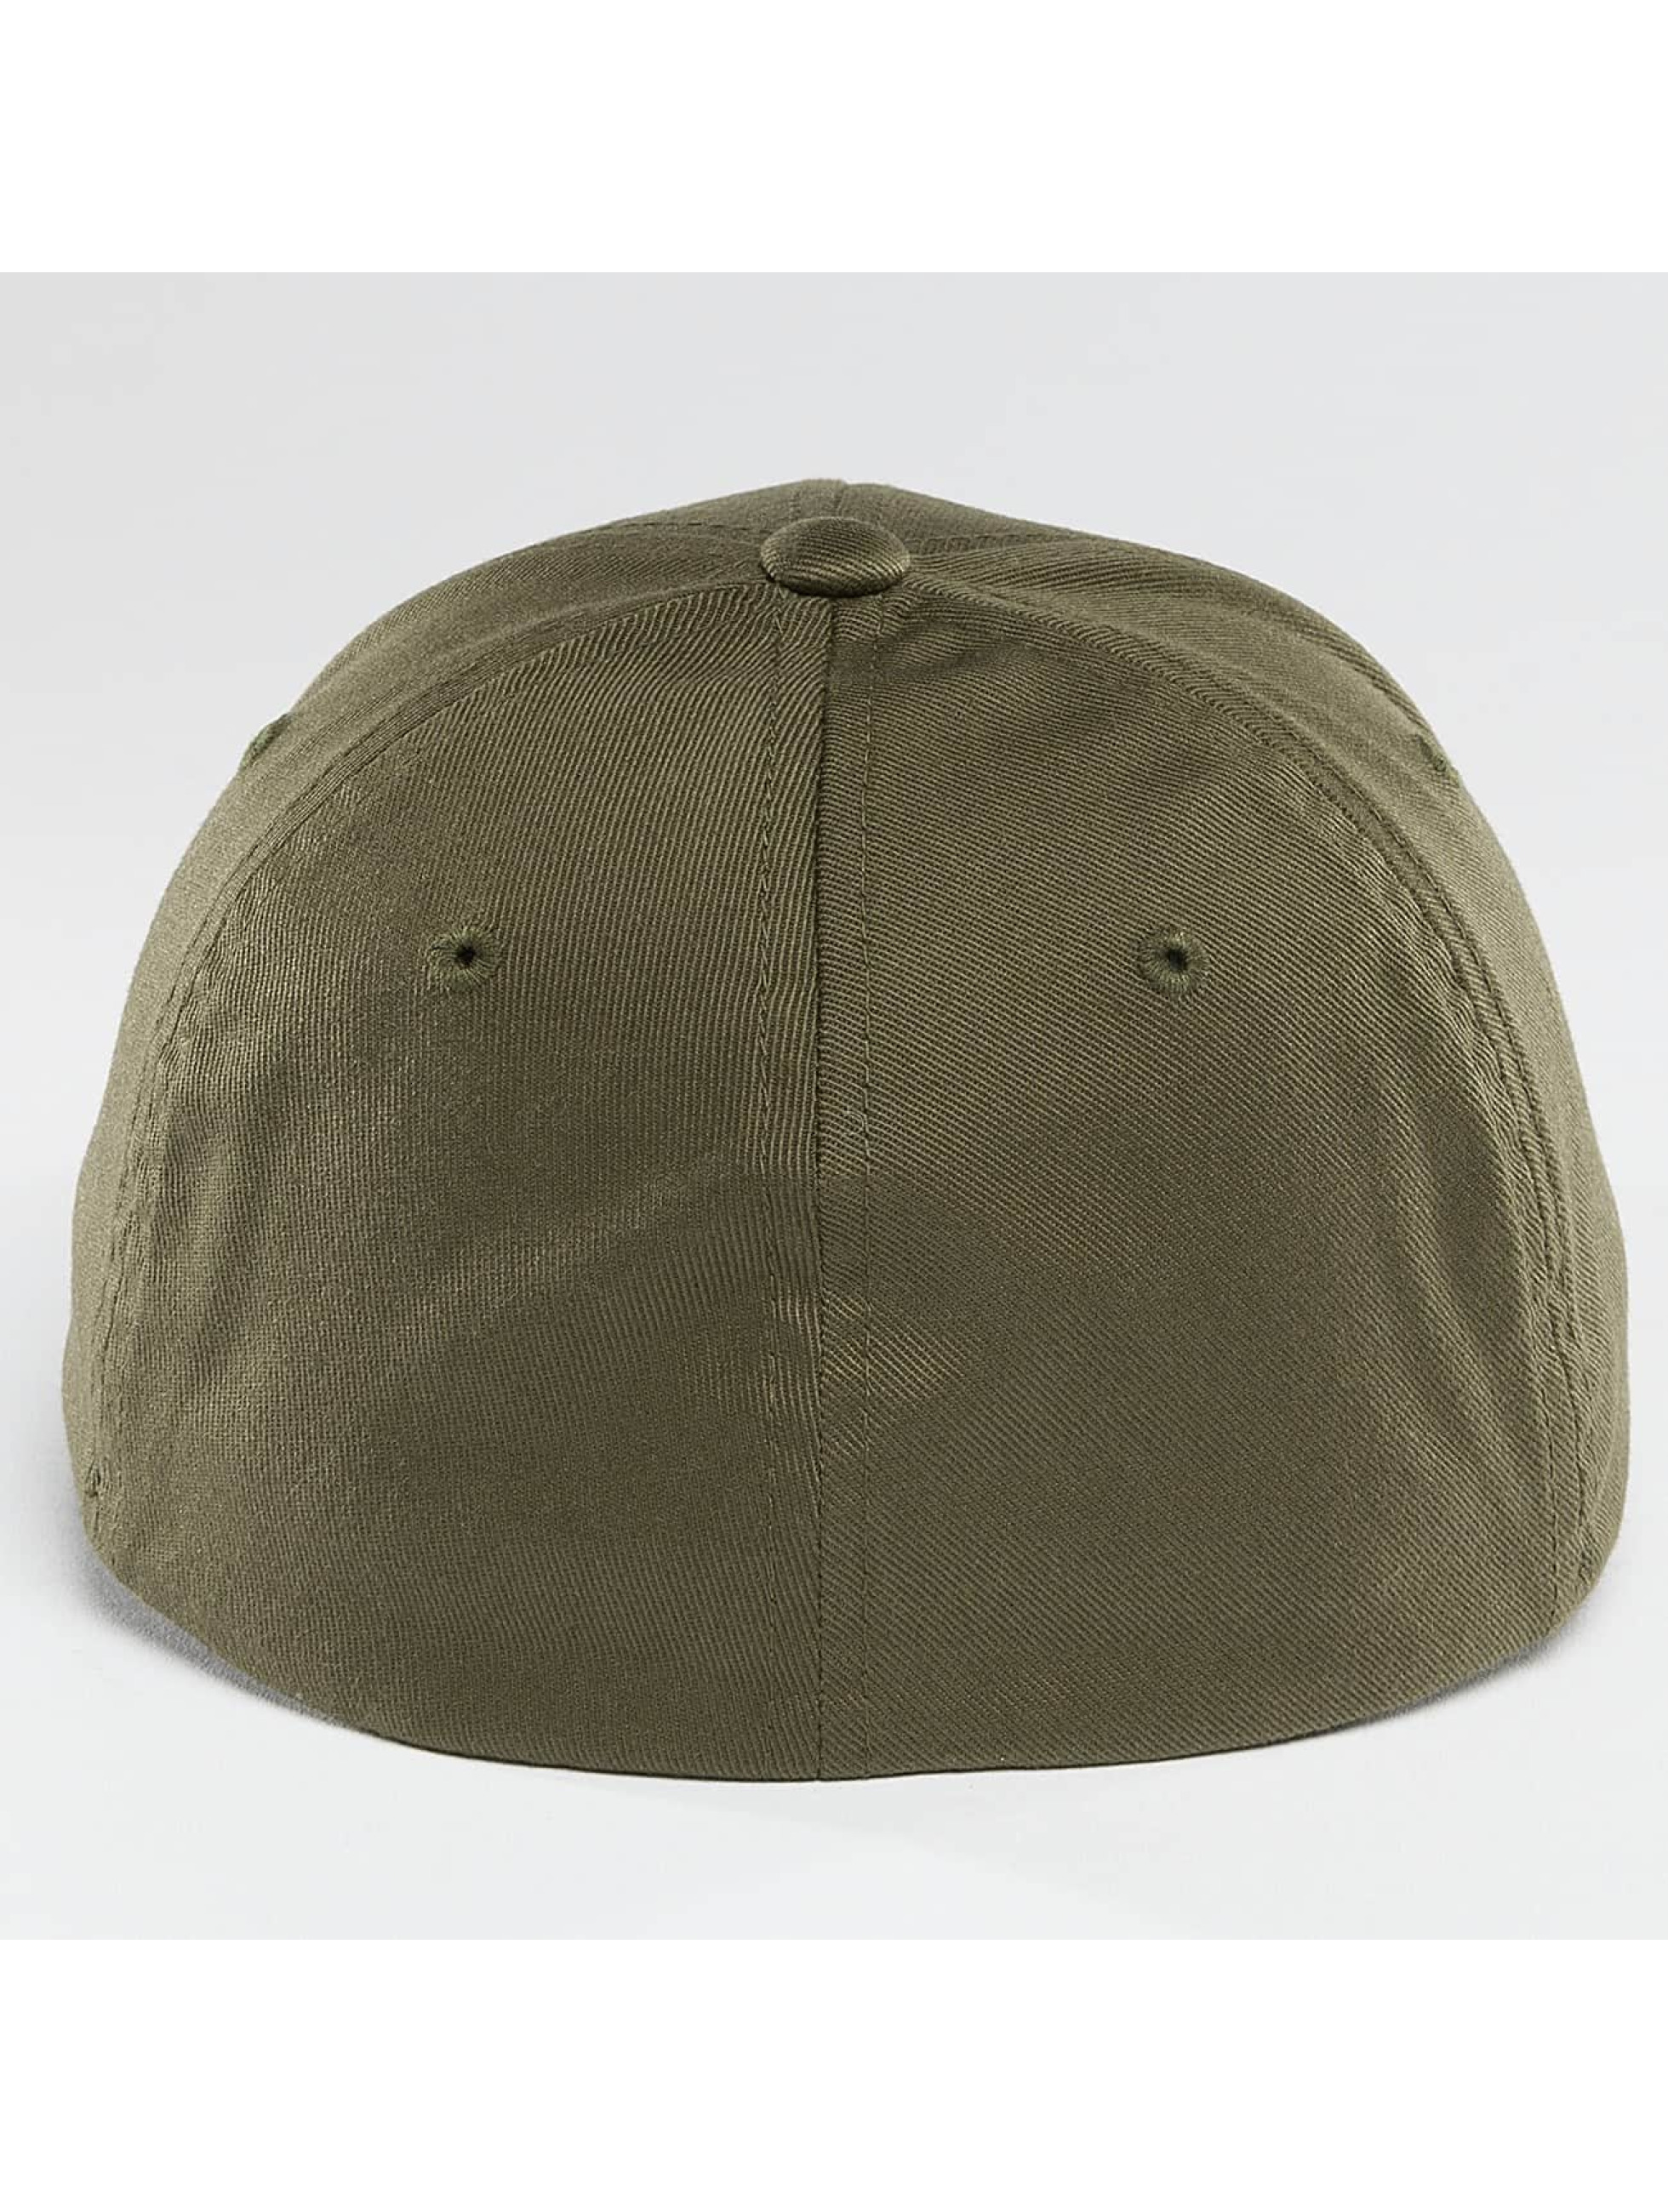 Flexfit Flexfitted Cap Wooly Combed olive